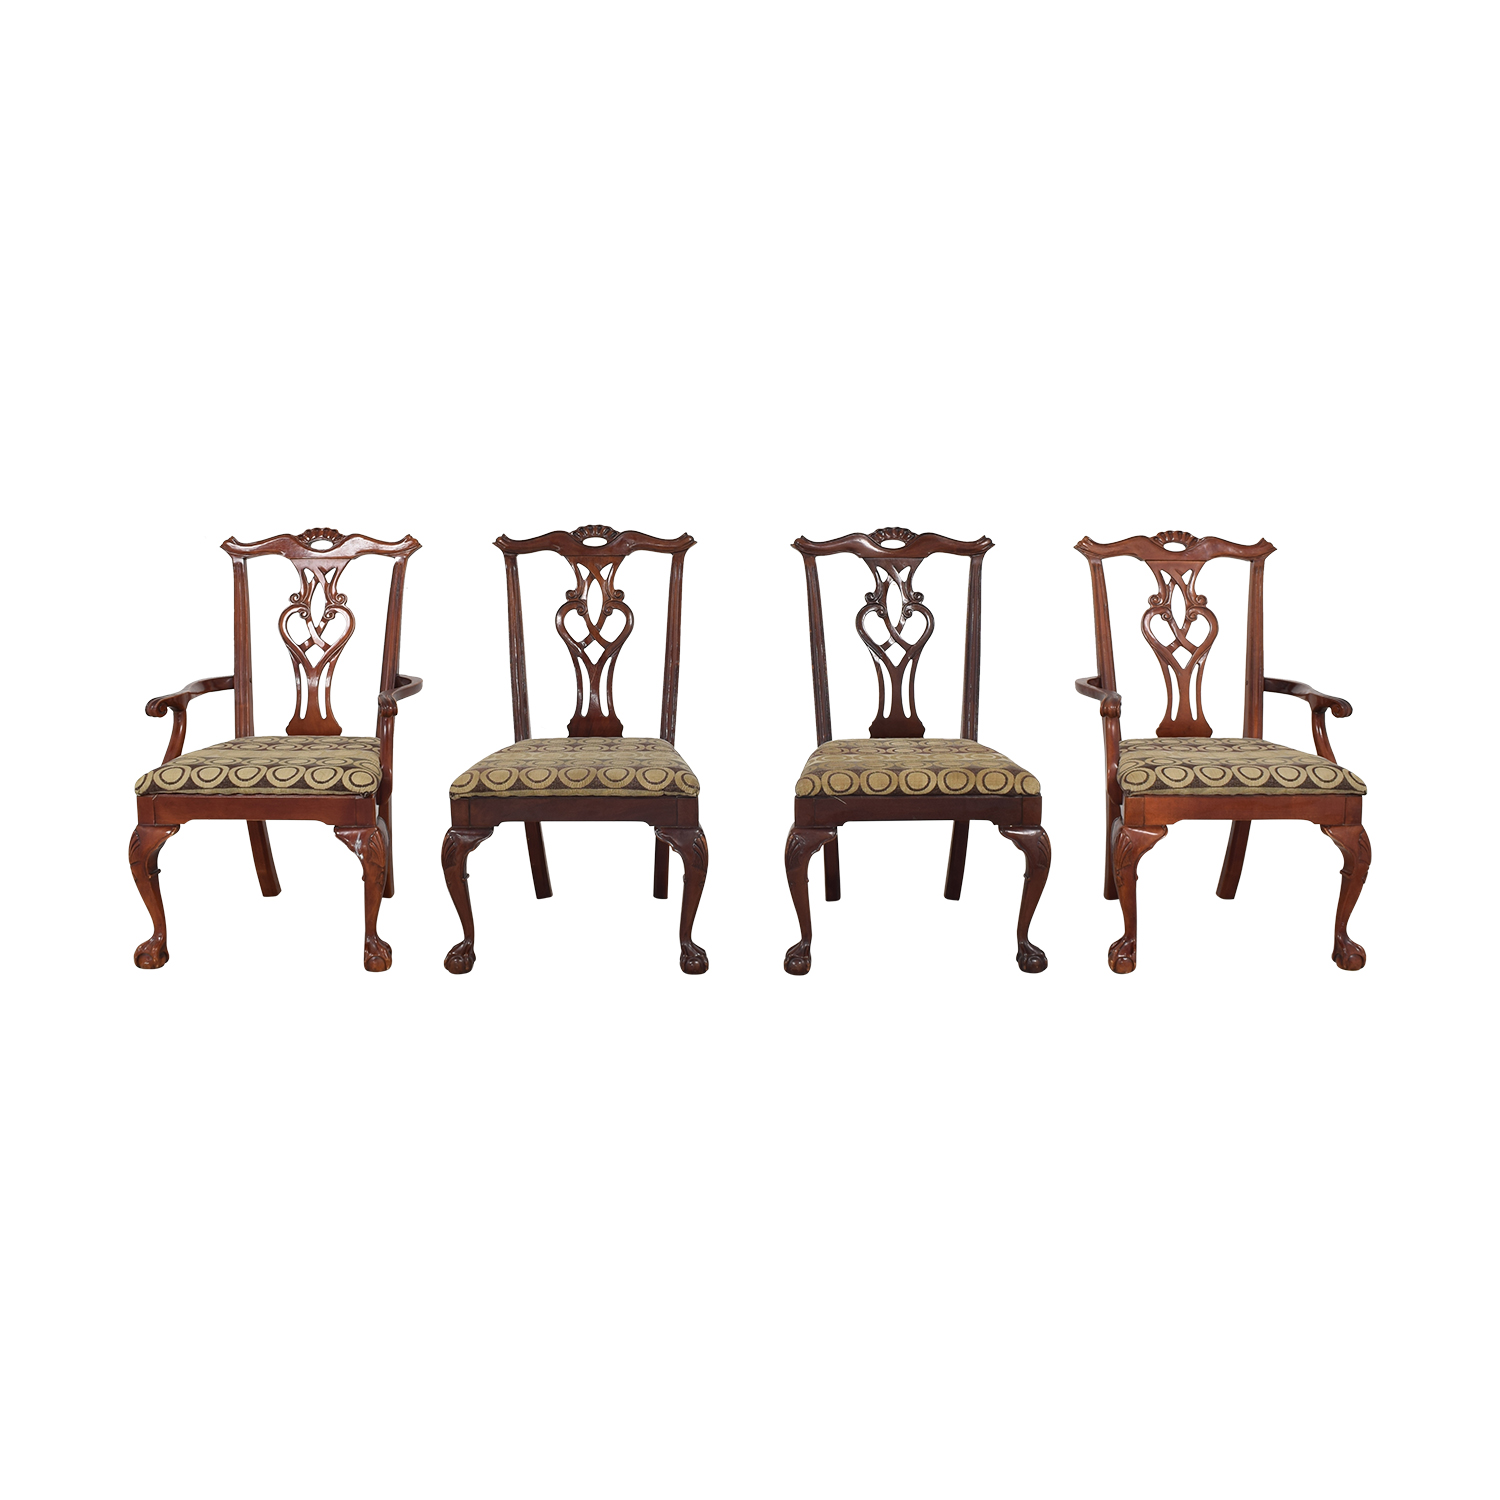 Bernhardt Bernhardt Dining Chairs price